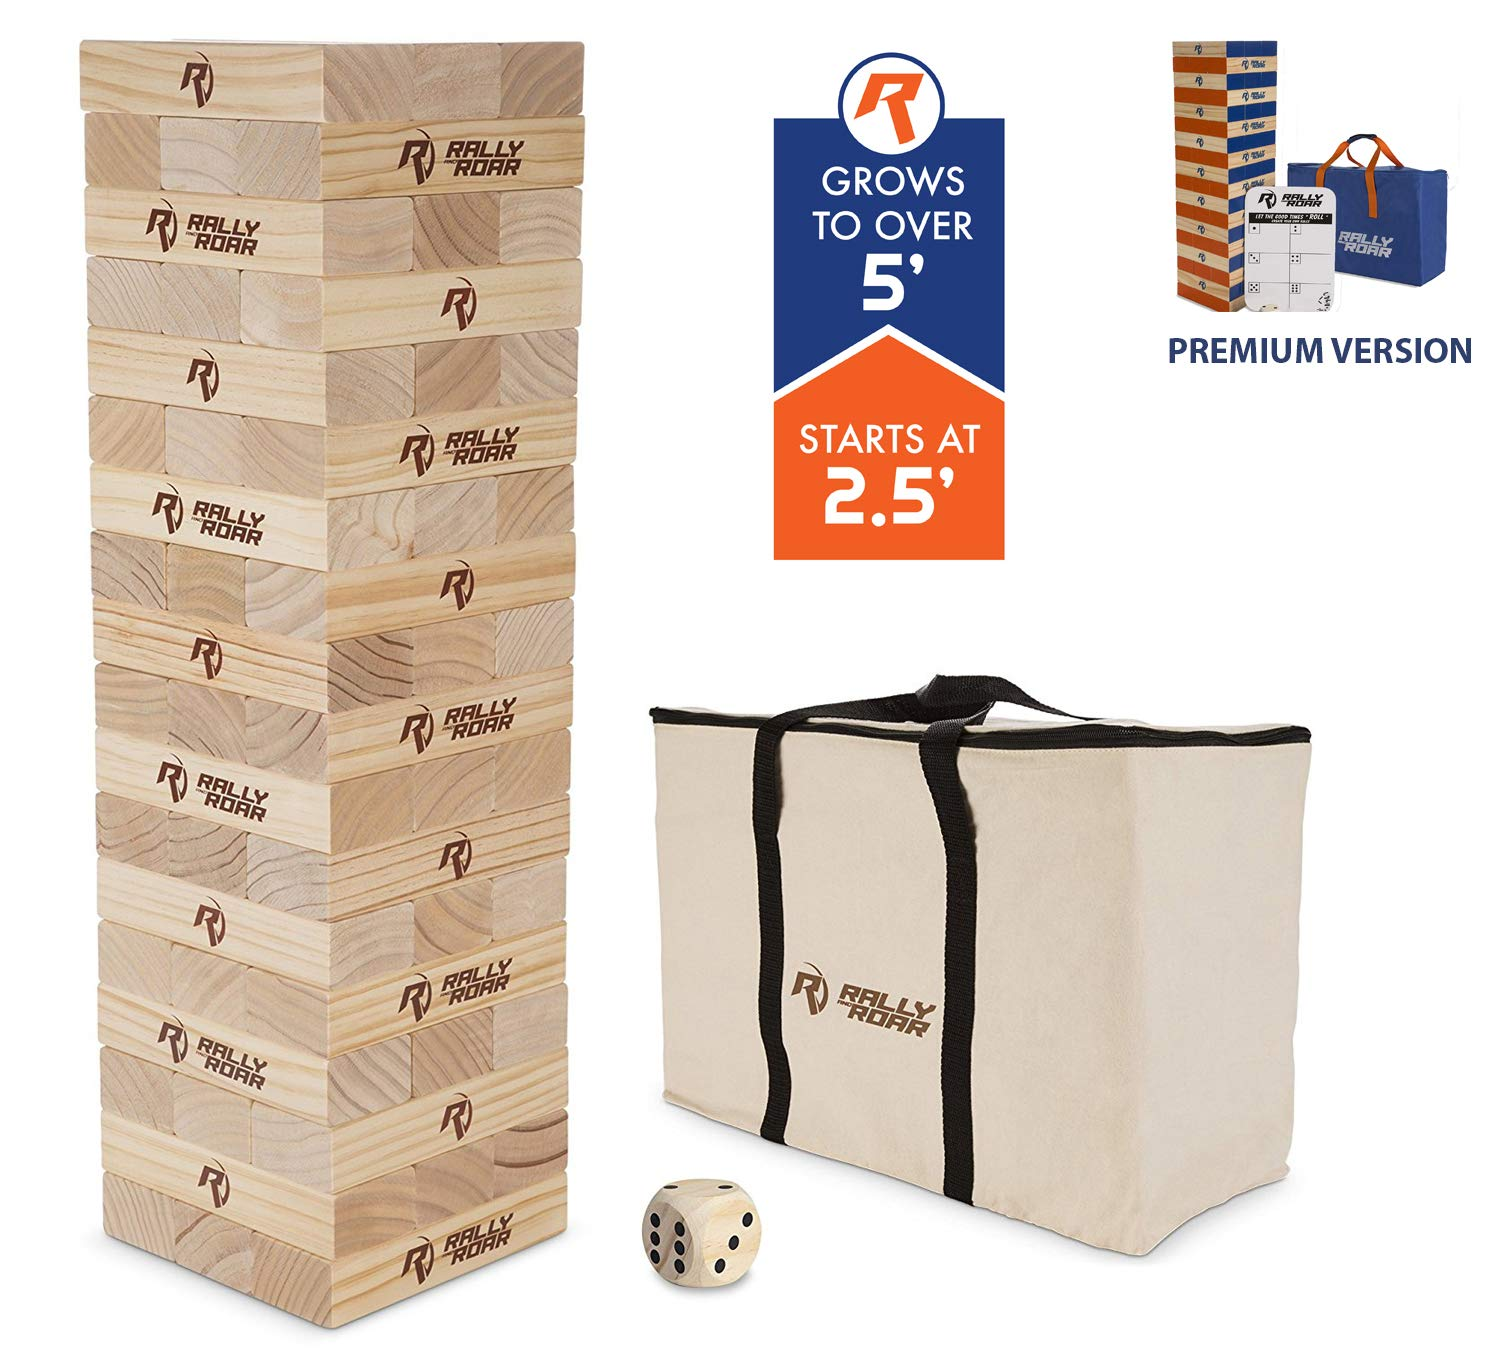 Rally and Roar Toppling Tower Giant Tumbling Timbers Game 2.5 feet Tall (Build to Over 5 feet)– Classic Wood Version - for Adults, Kids, Family – Stacking Blocks Set w/Canvas Bag by Rally and Roar (Image #1)